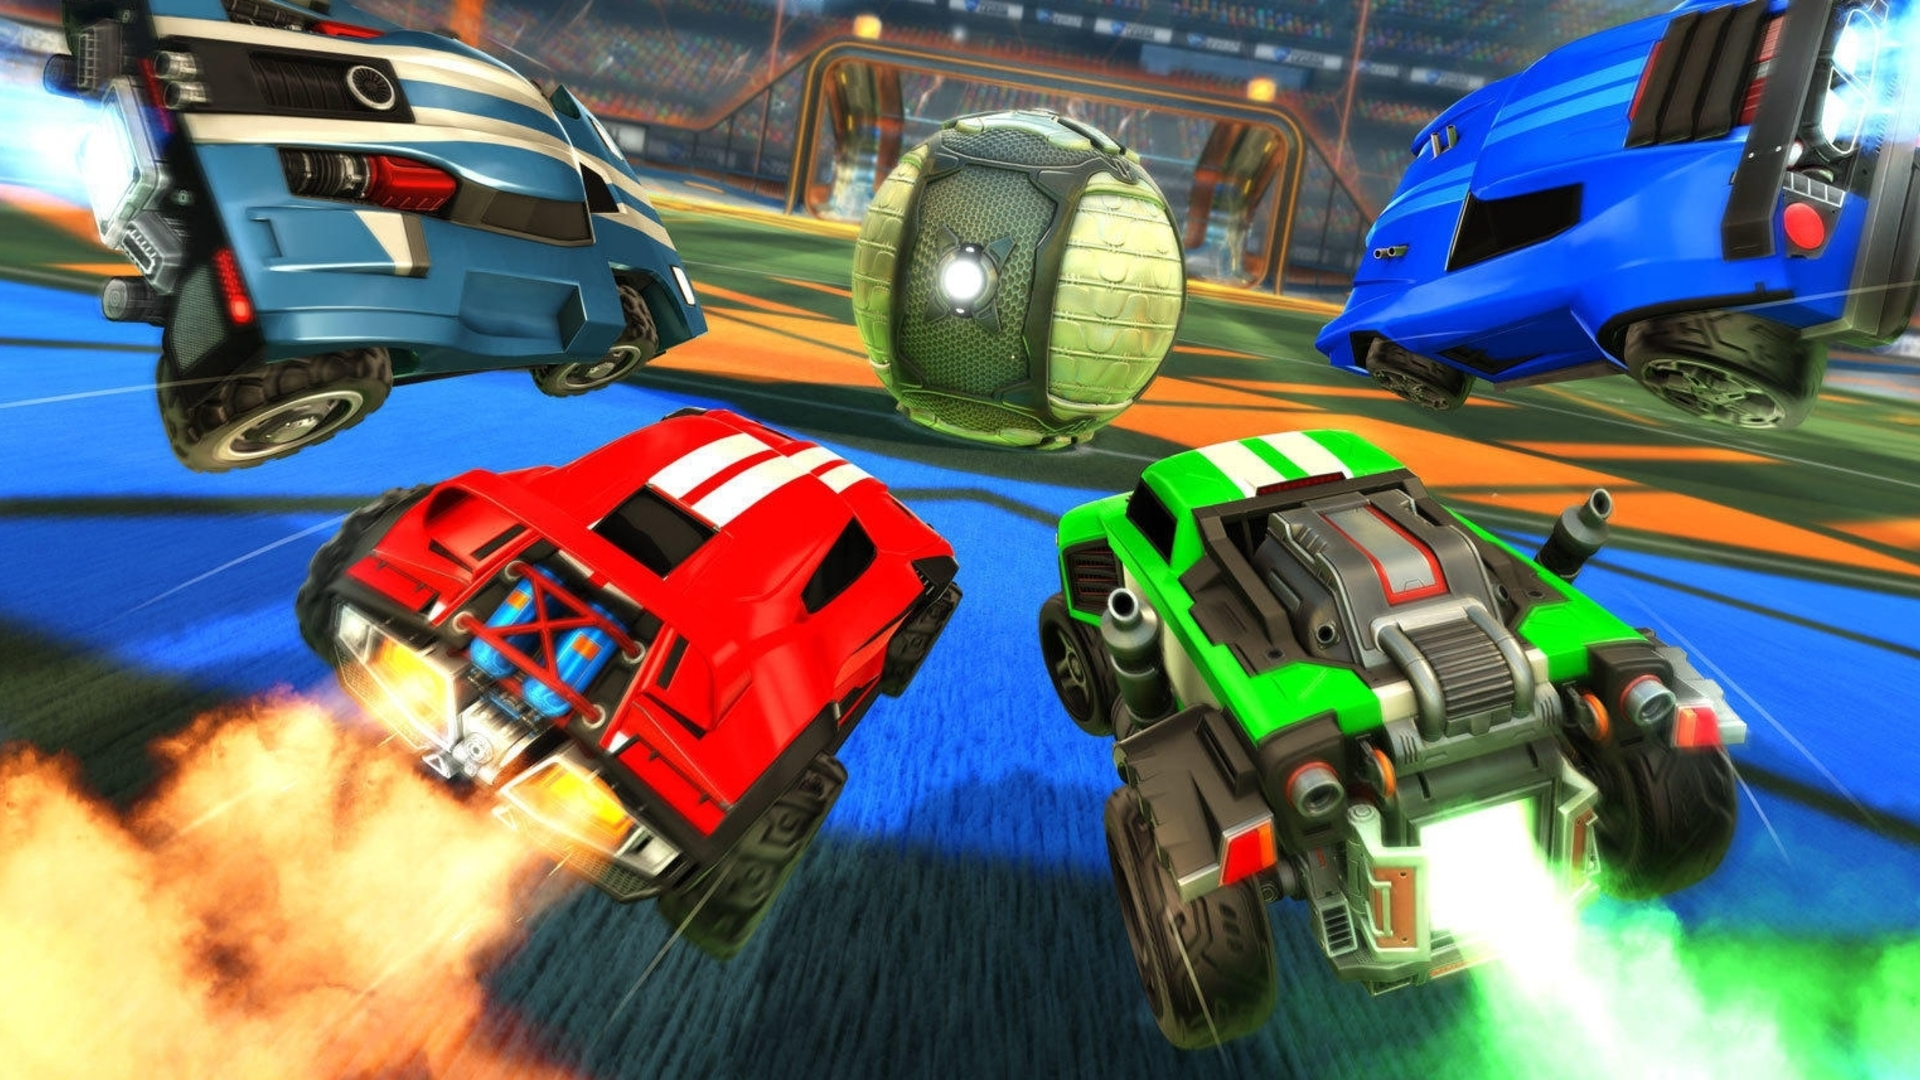 Rocket League now features full cross-platform play between PS4, Xbox One, Switch, and PC